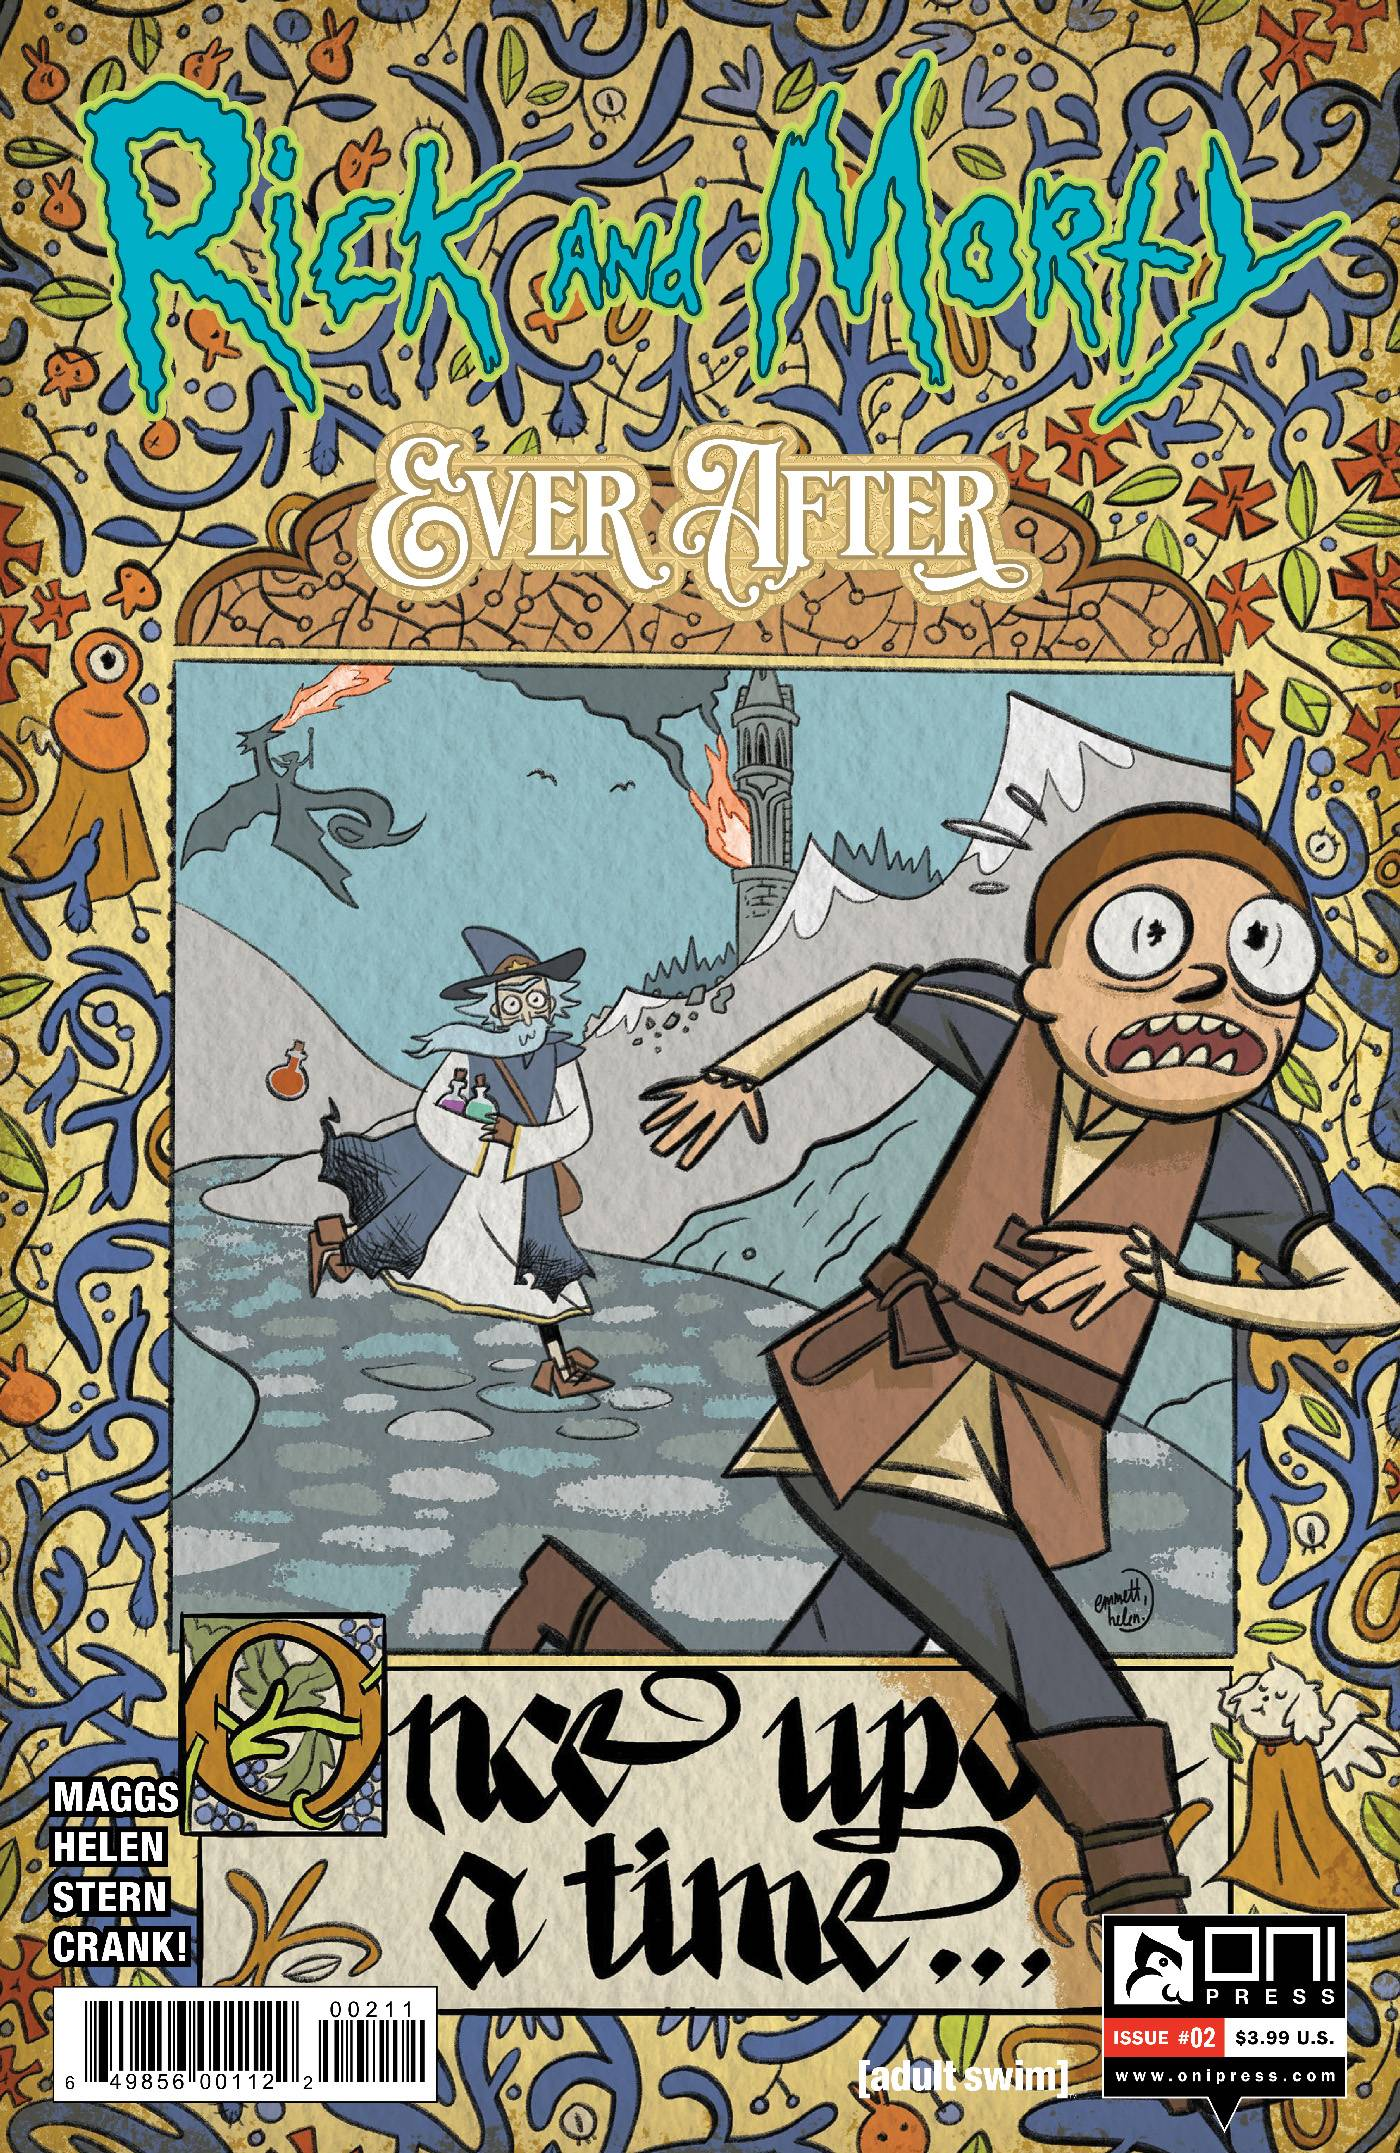 RICK & MORTY EVER AFTER